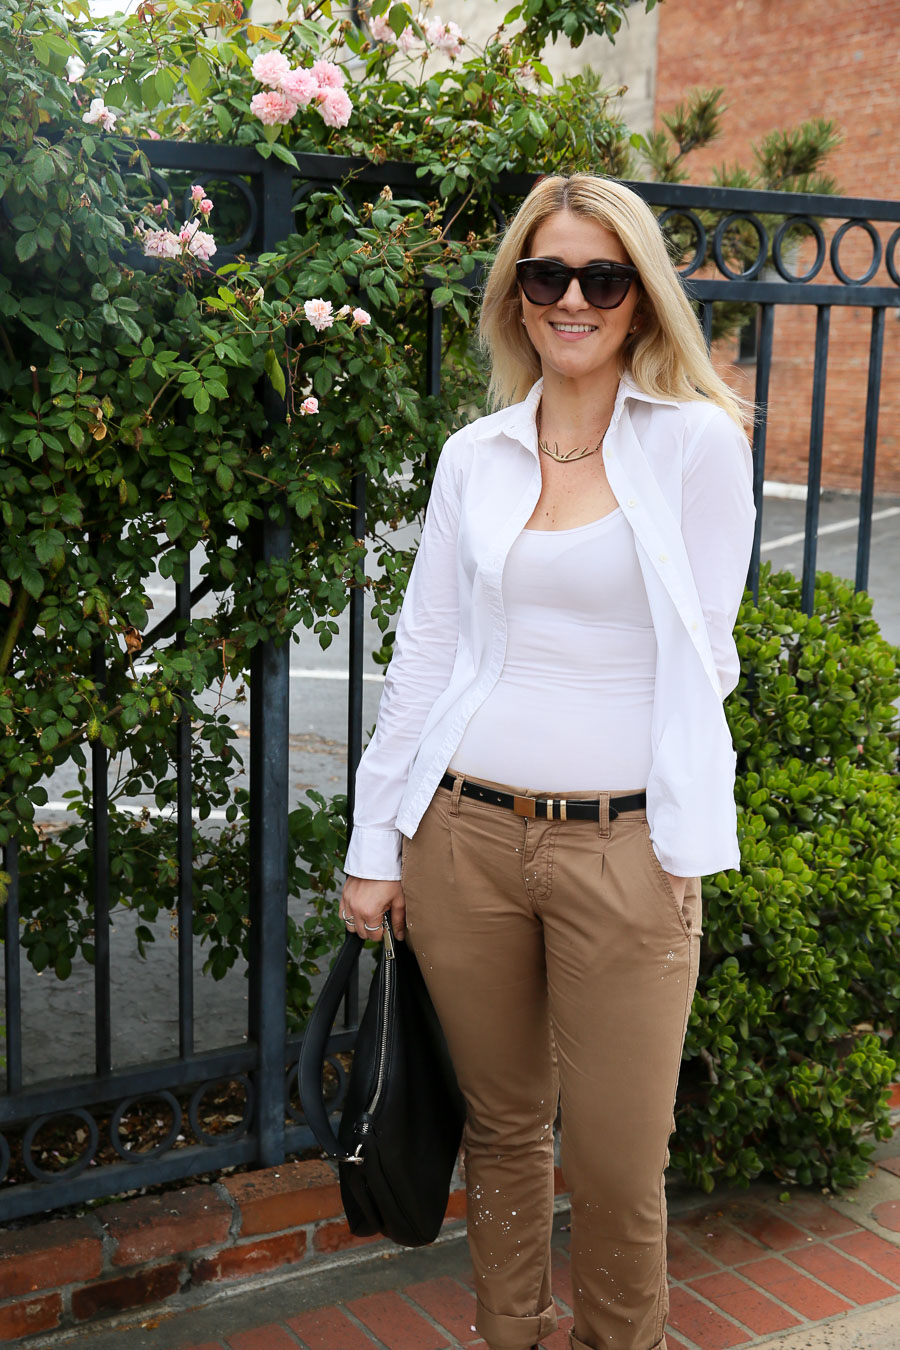 Khaki Pants Outfit for Summer Day to Night | Luci's Morsels